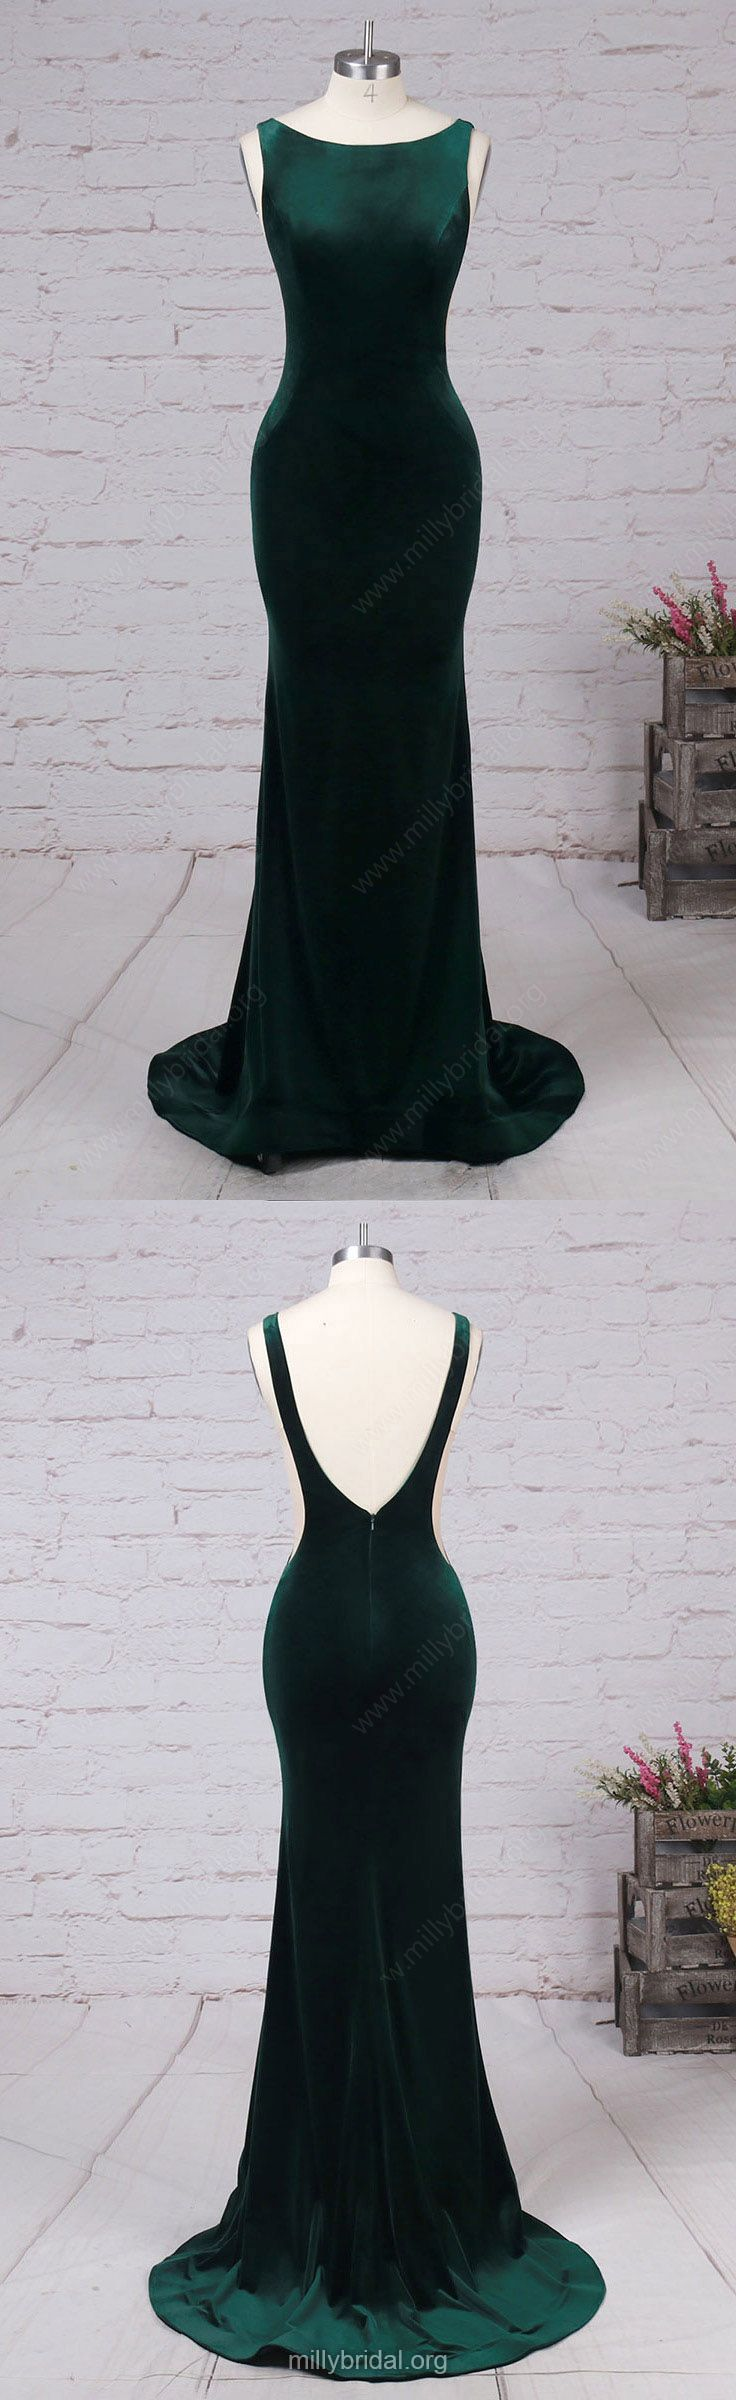 Green Prom Dresses,Long Prom Dresses,2018 Prom Dresses For Teens,Trumpet/Mermaid Formal Evening Dresses Scoop Neck, Tulle Party Pageant Dresses Velvet #greendresses